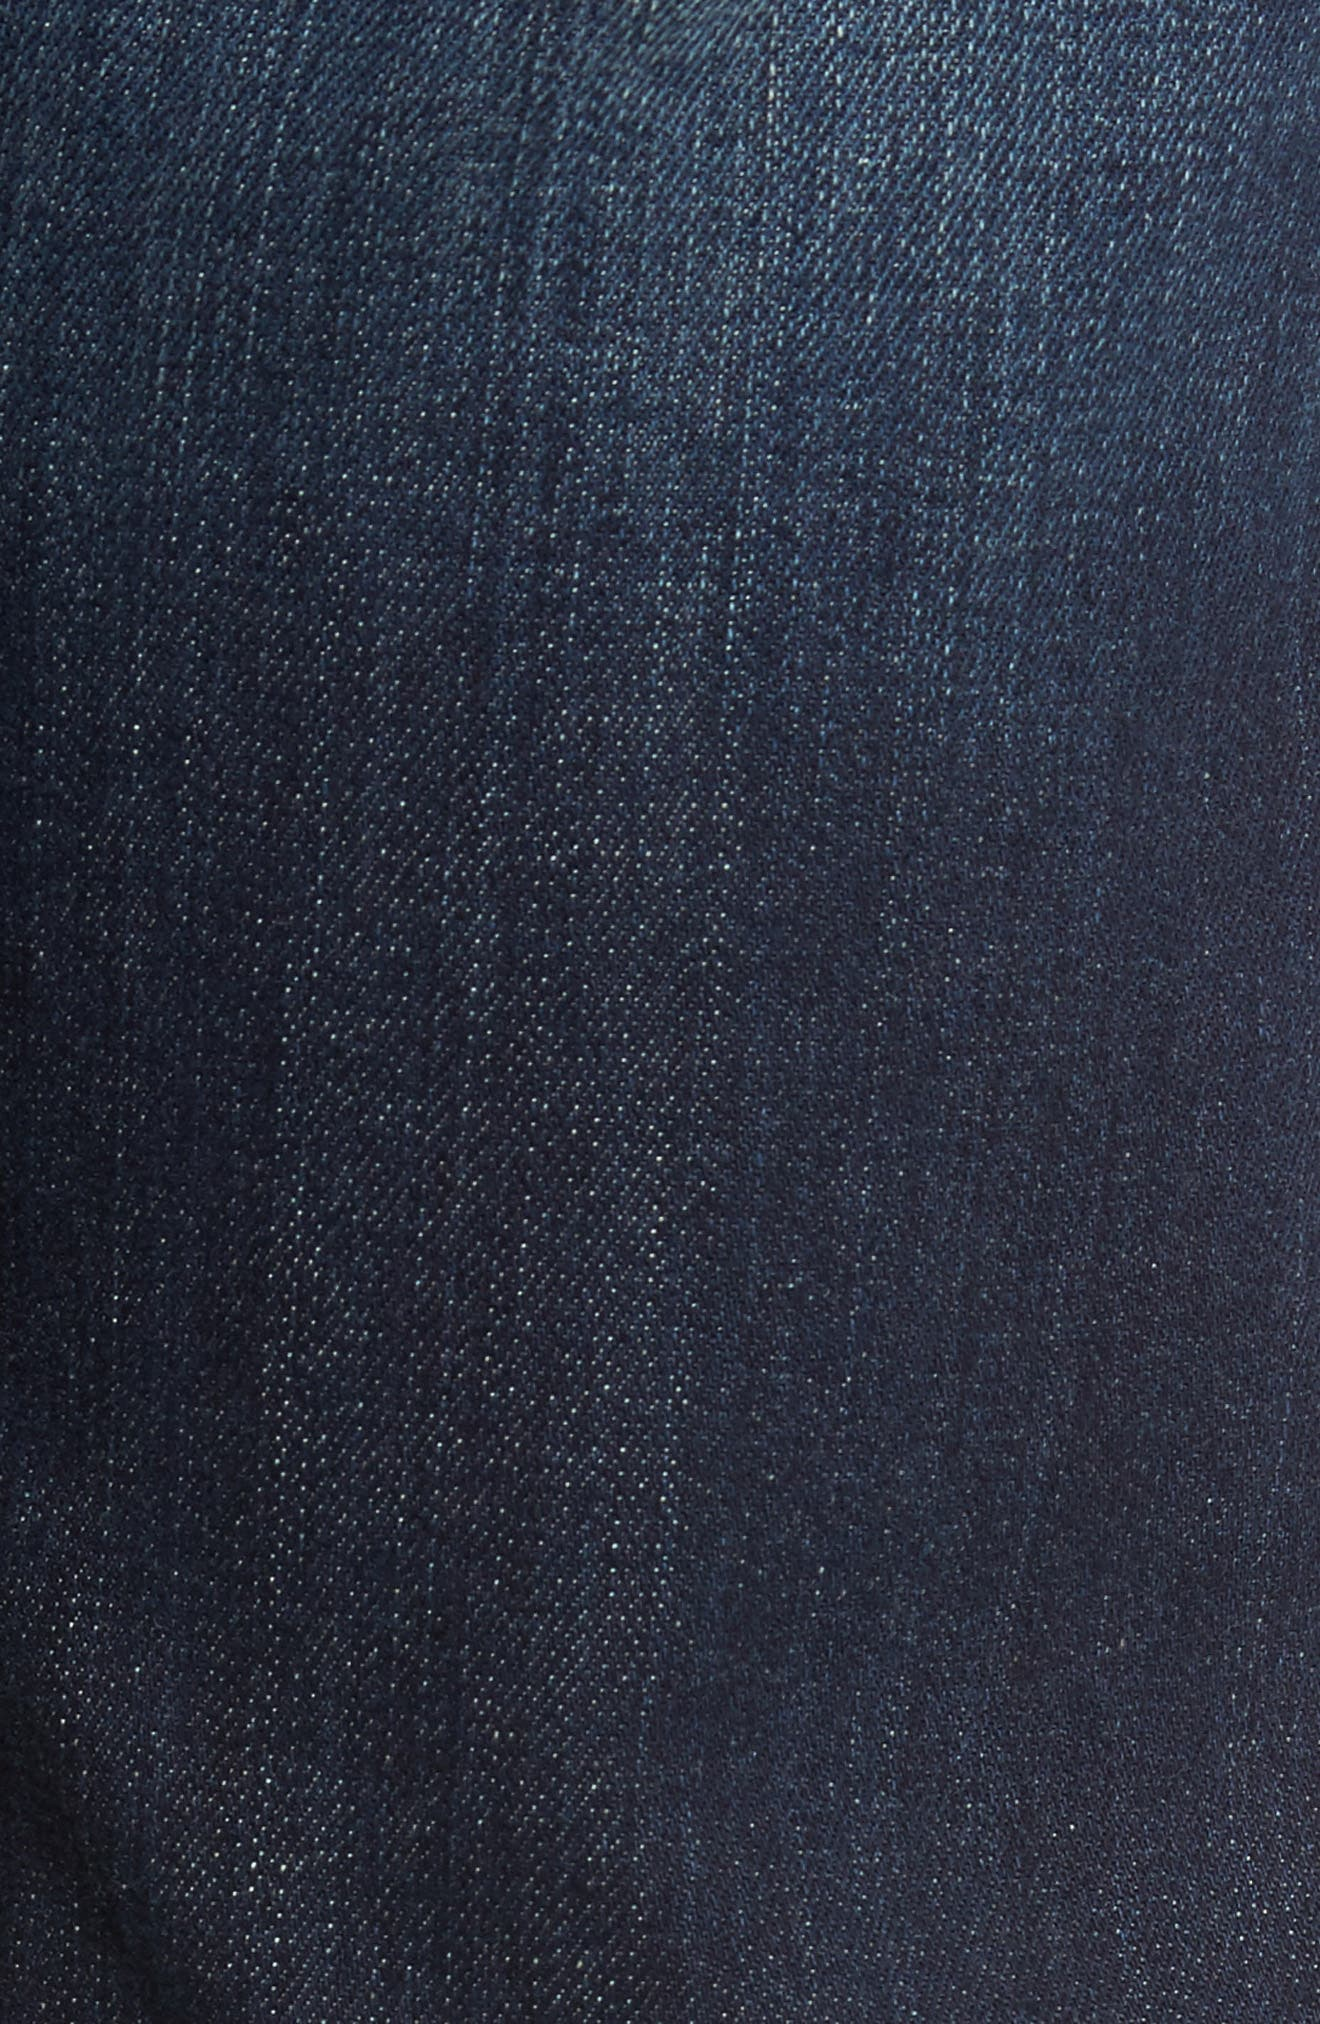 50-11 Relaxed Fit Jeans,                             Alternate thumbnail 5, color,                             400